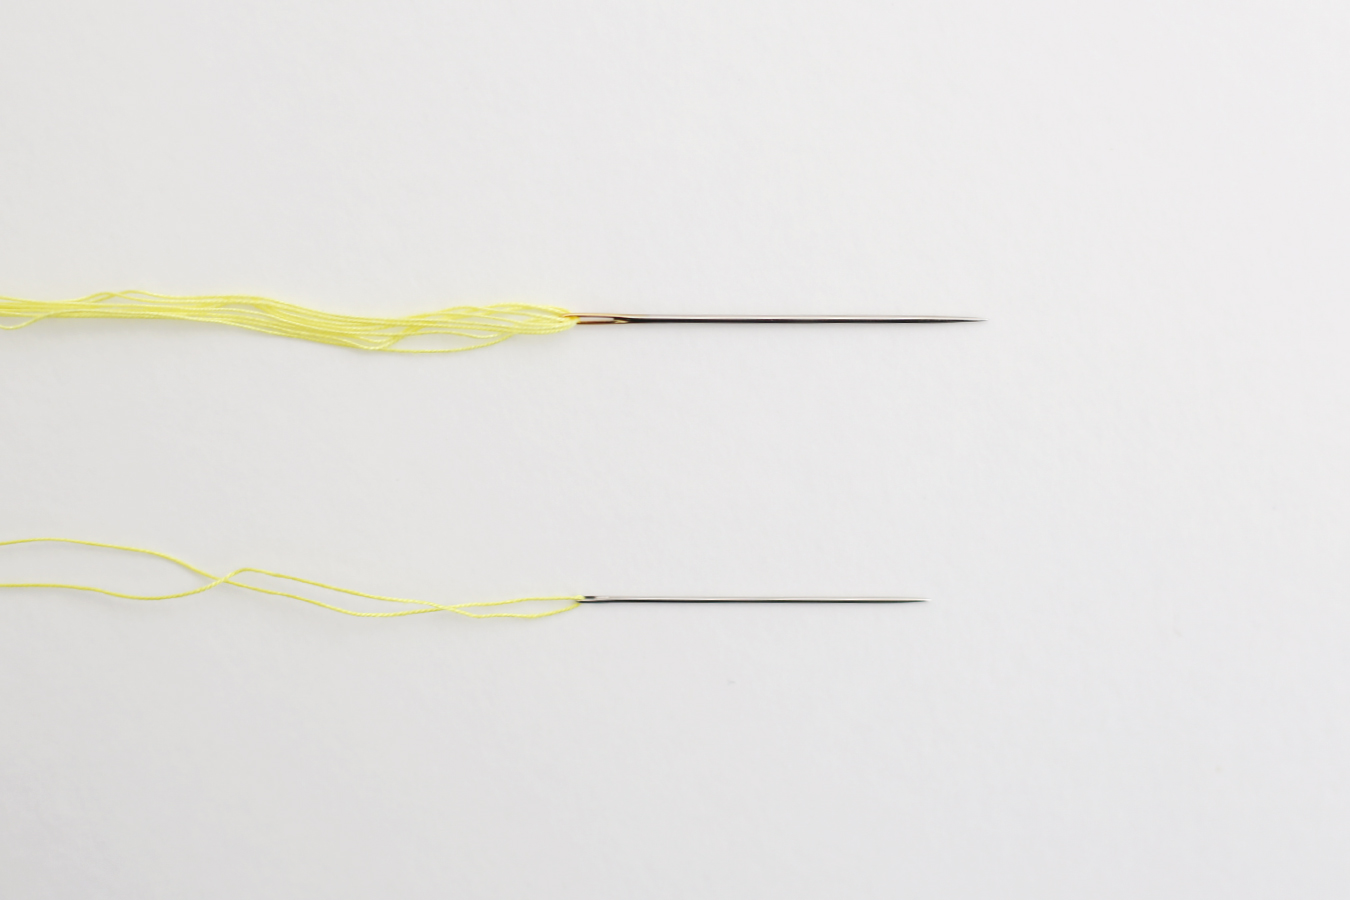 SEWING NEEDLES7